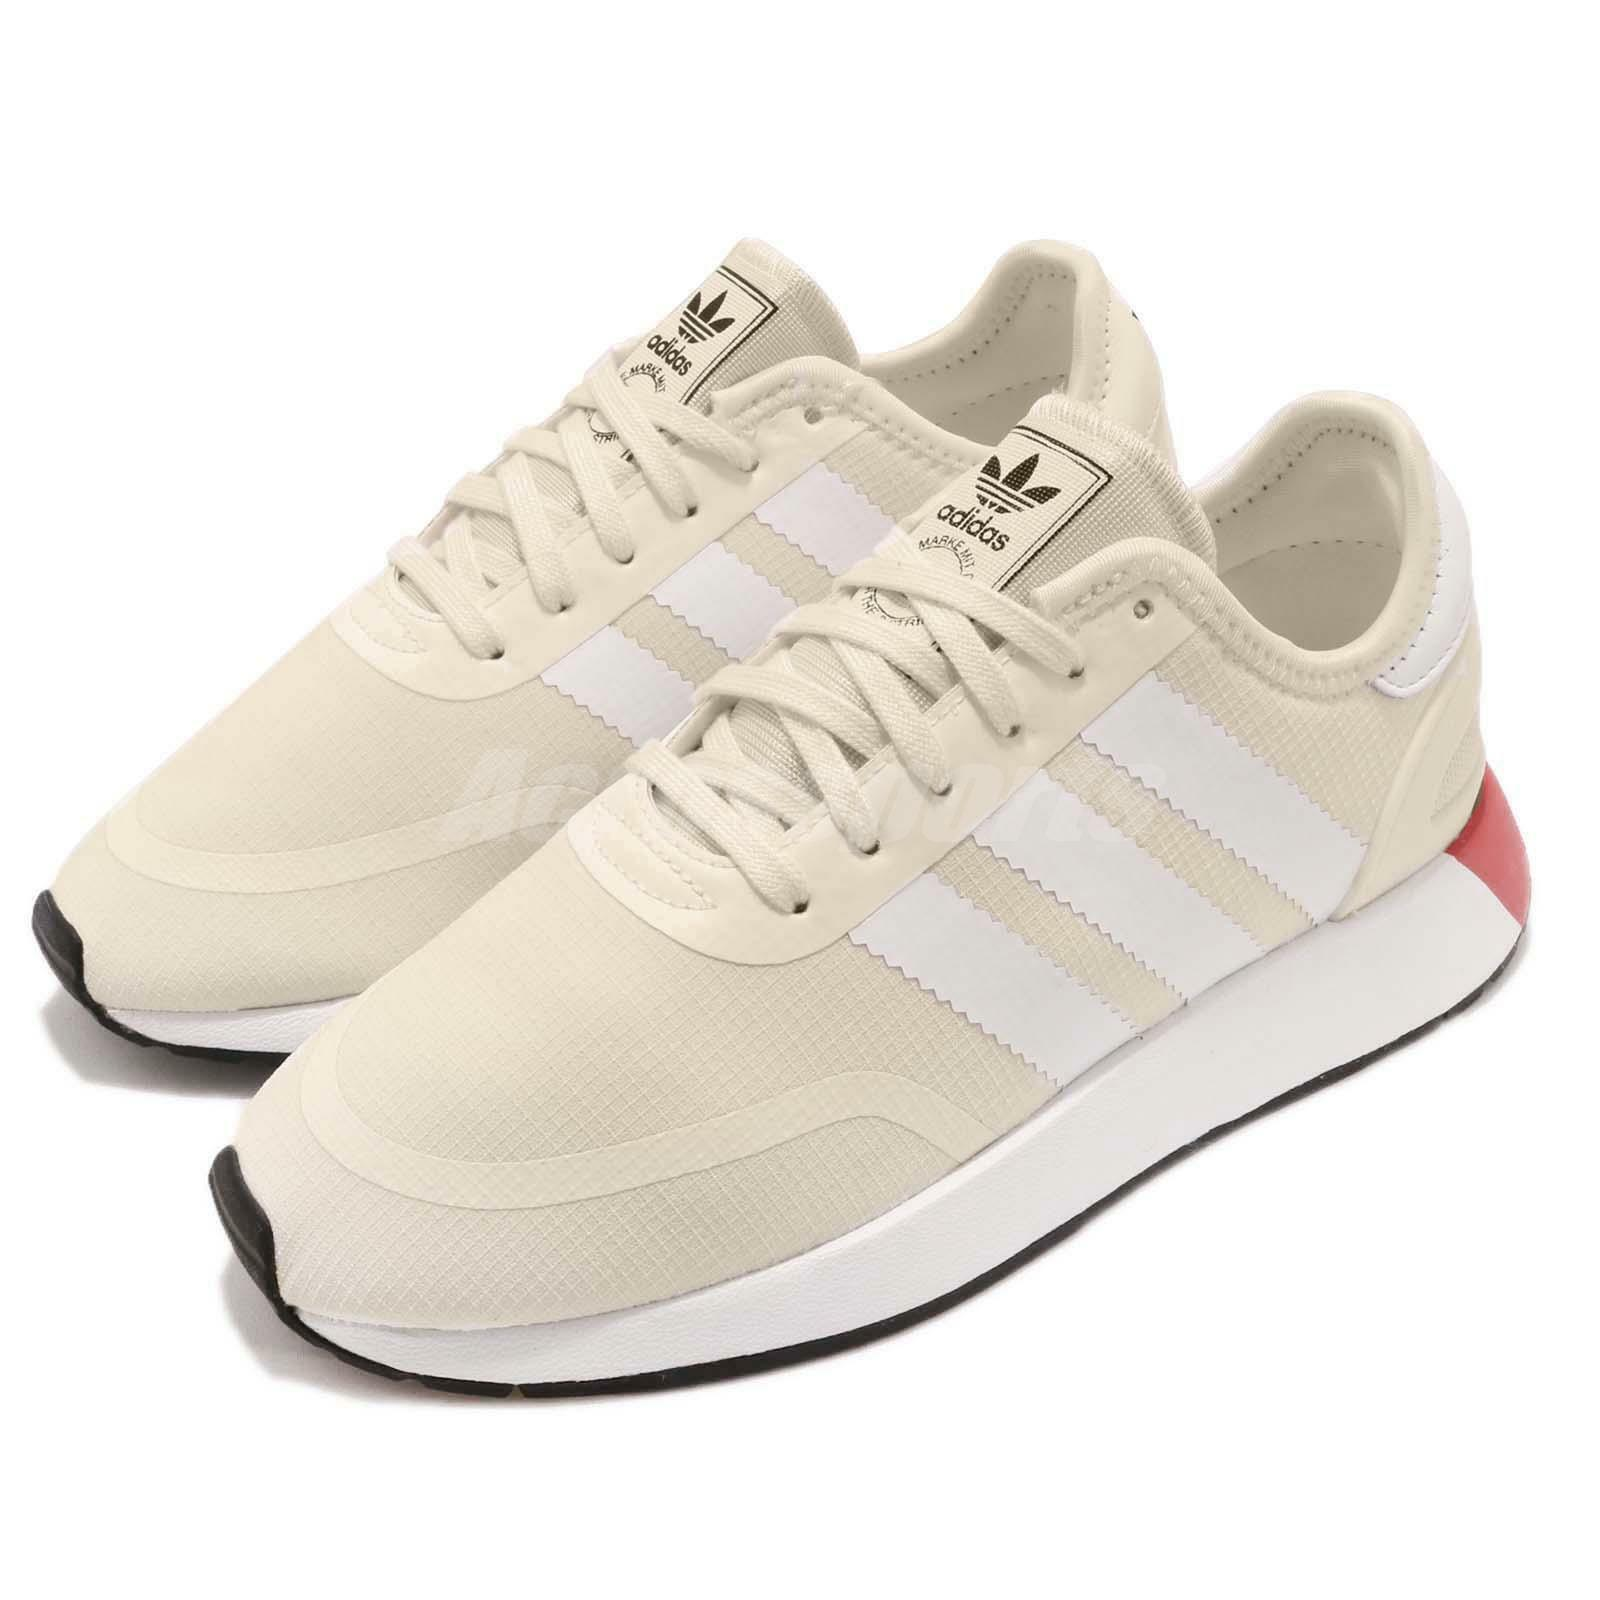 Adidas Originals N-5923 W Iniki Runner Ivory White Women Running shoes AQ1132